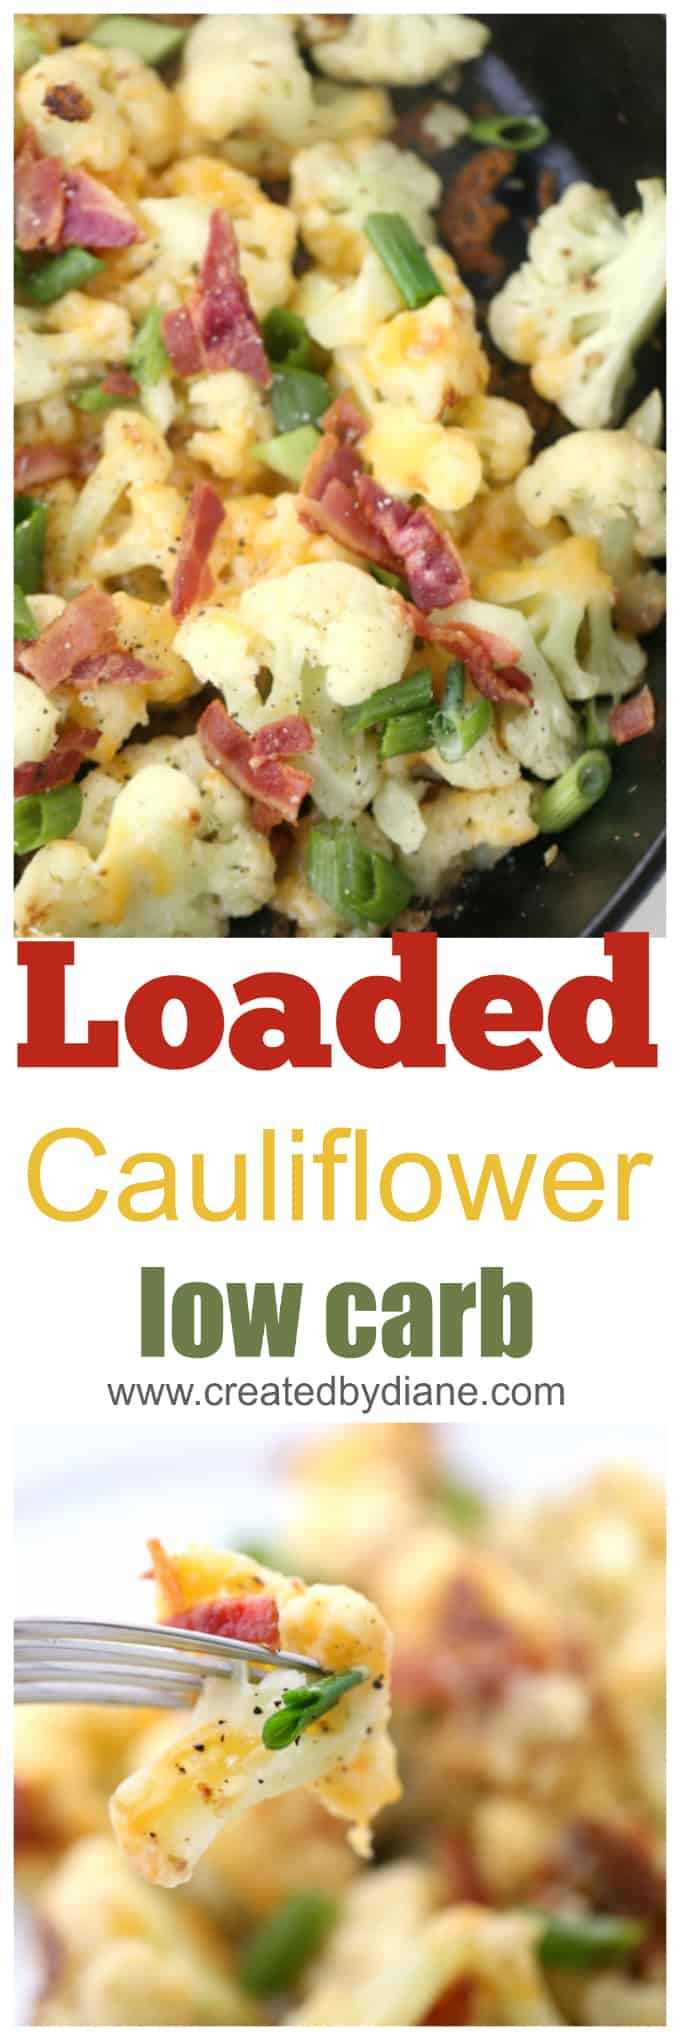 low carb, loaded cauliflower recipes tastes like loaded baked potatoes made in minutes in a skillet www.createdbydiane.com